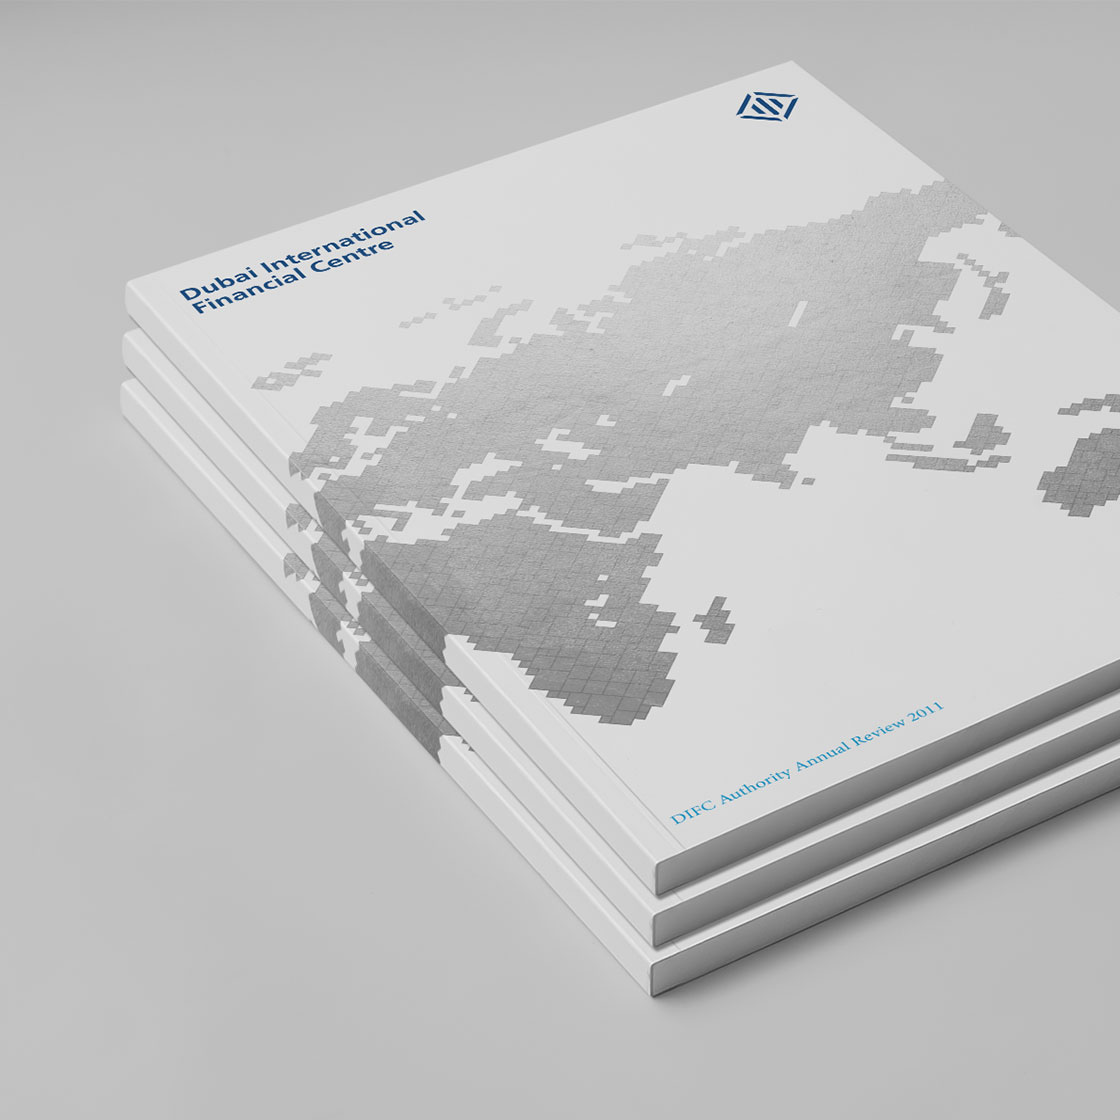 DIFC Annual Review